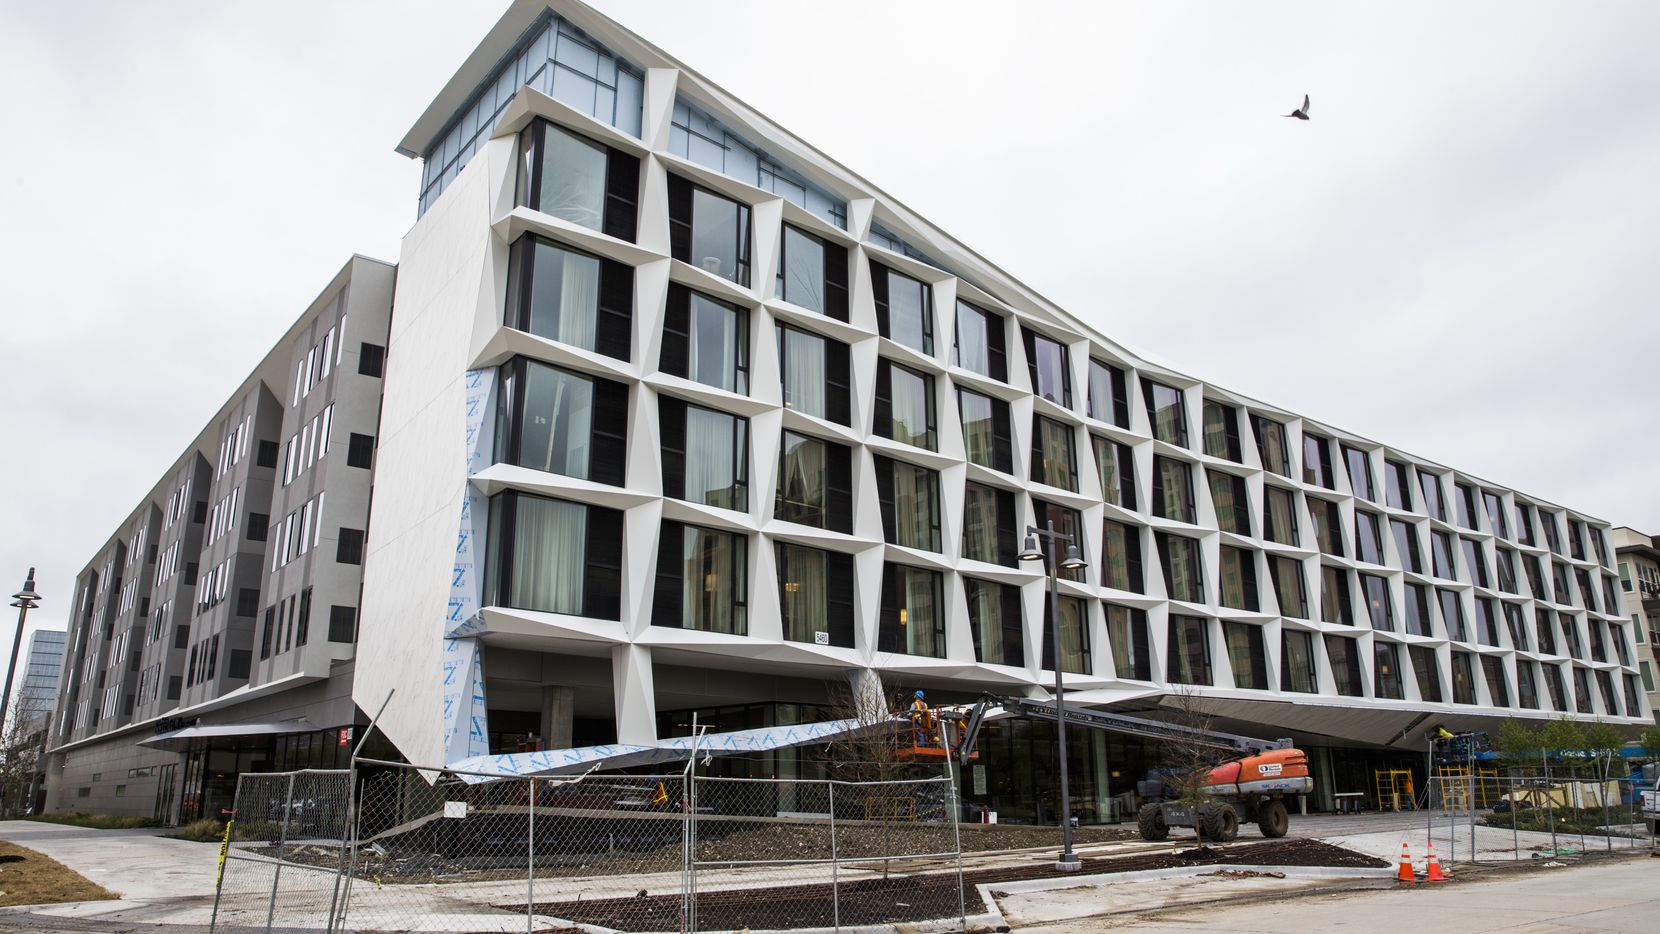 Construction workers put finishing touches on the exterior of the AC Hotel, which  recently finished  construction near the Galleria, in Far North Dallas.